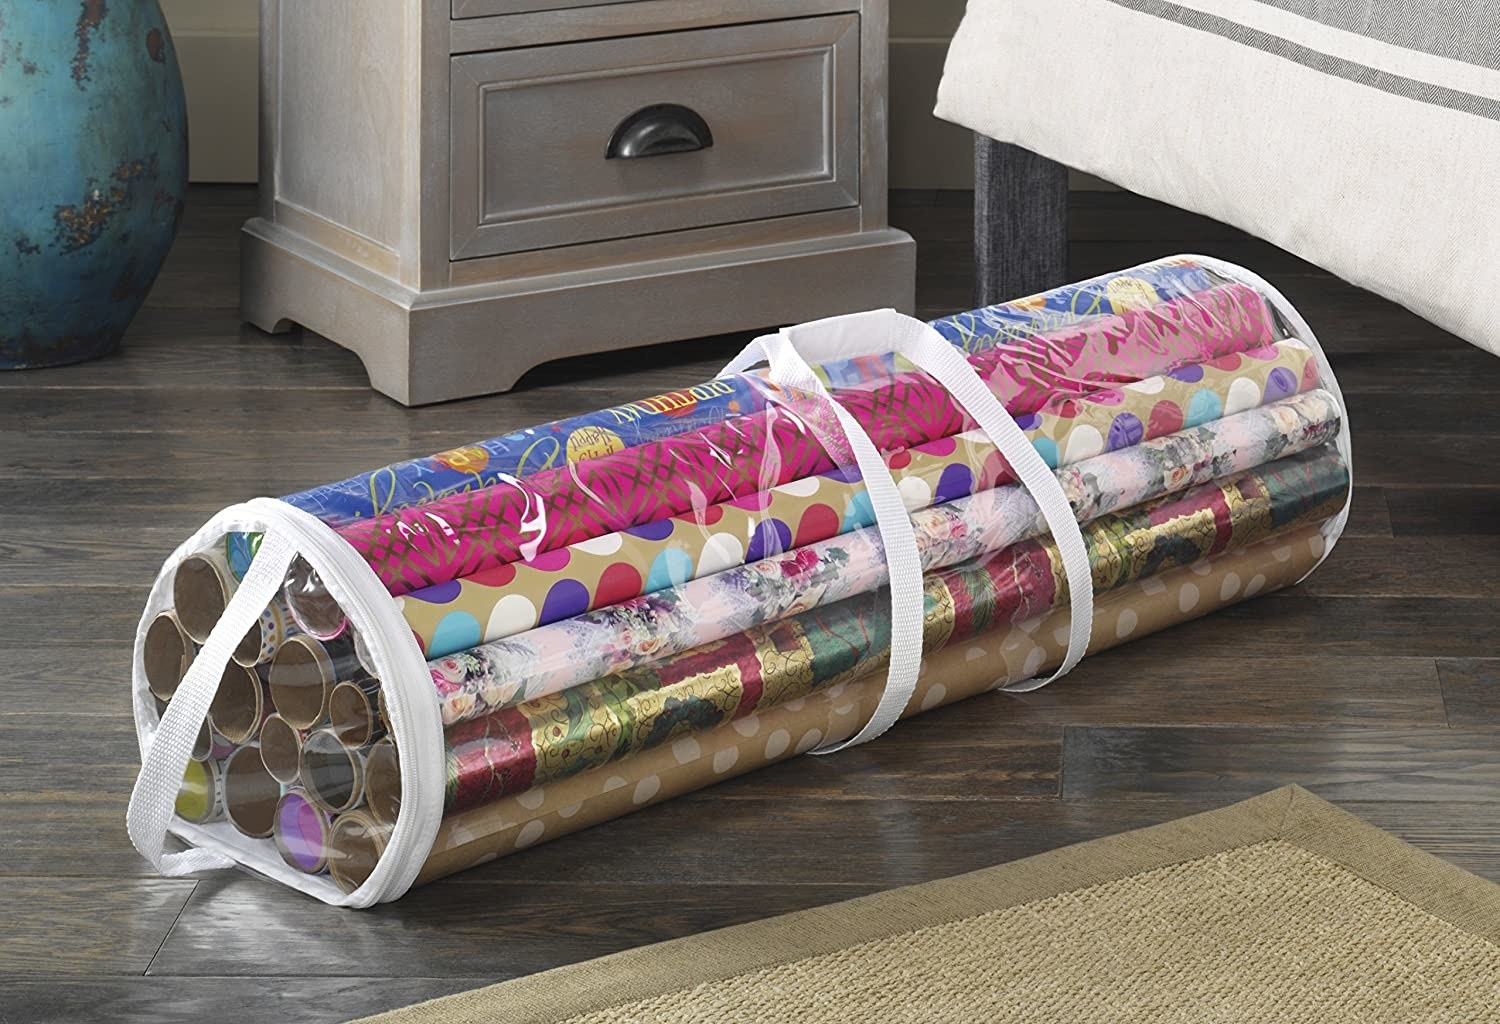 The cylindrical gift wrap organizer filled with wrapping paper tubes